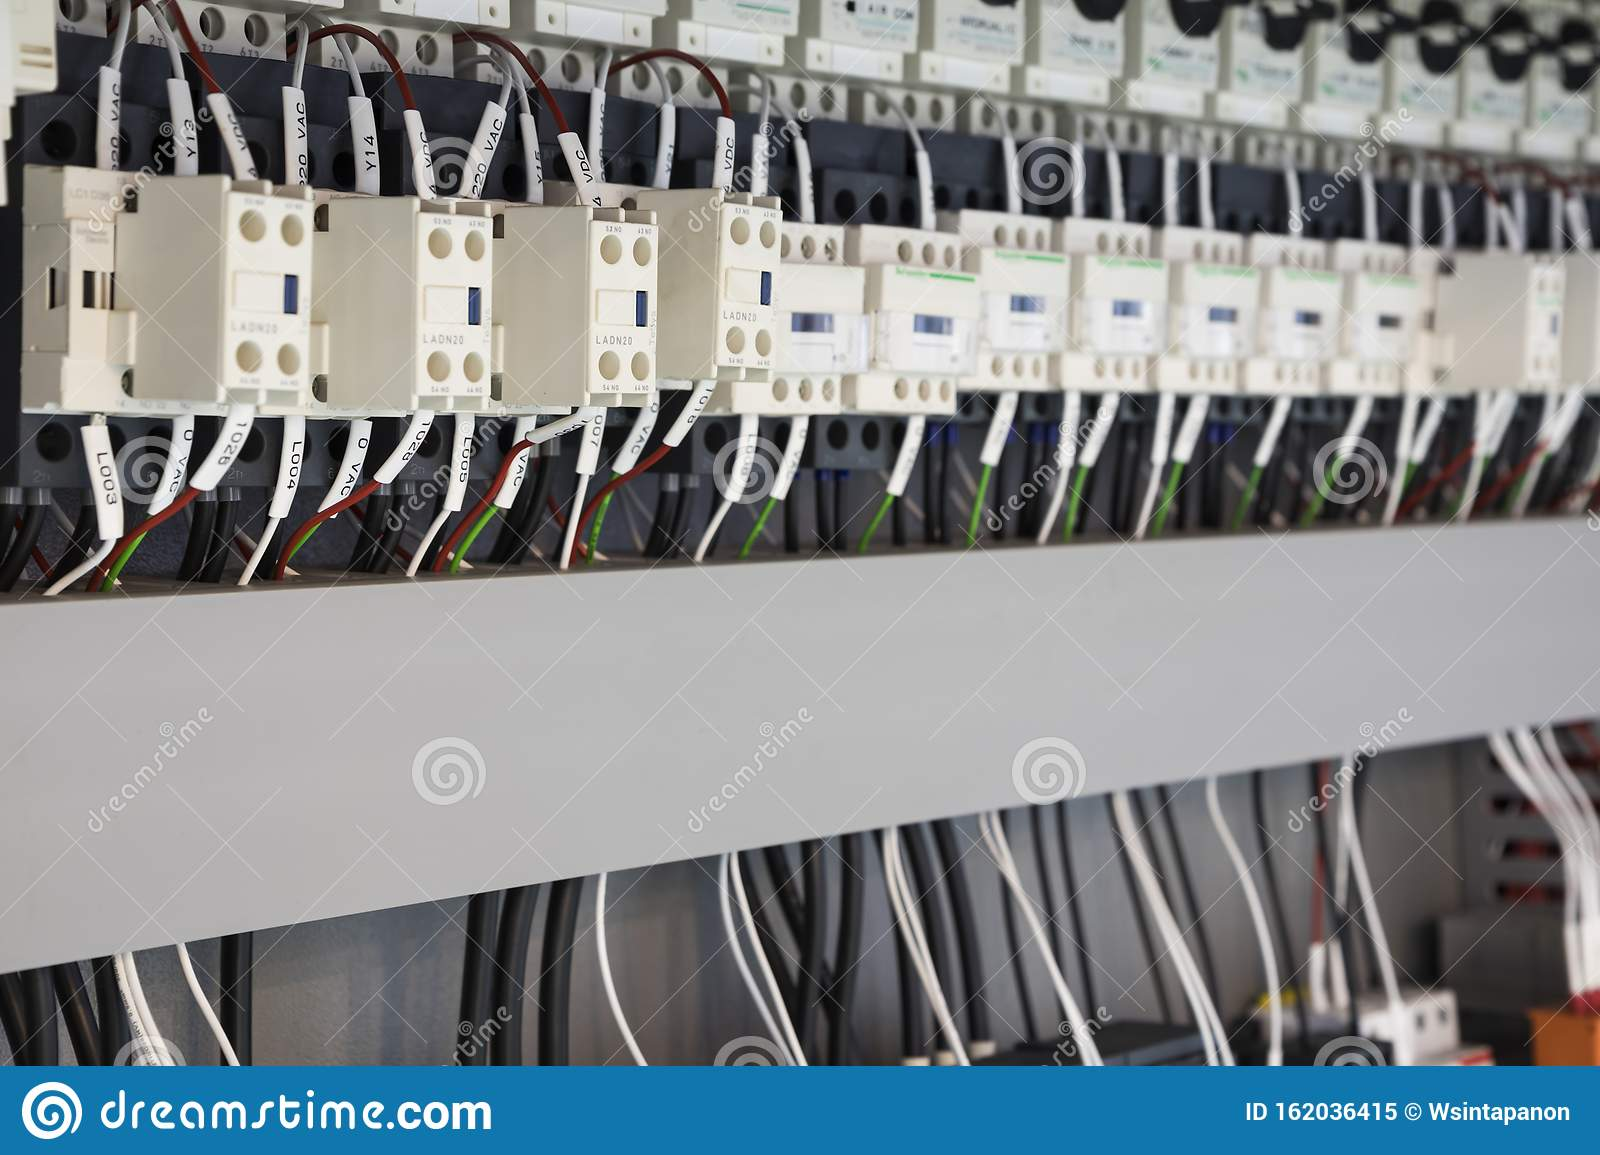 Wired Electrical Board With Terminals Stock Image - Image of electricity,  line: 162036415Dreamstime.com